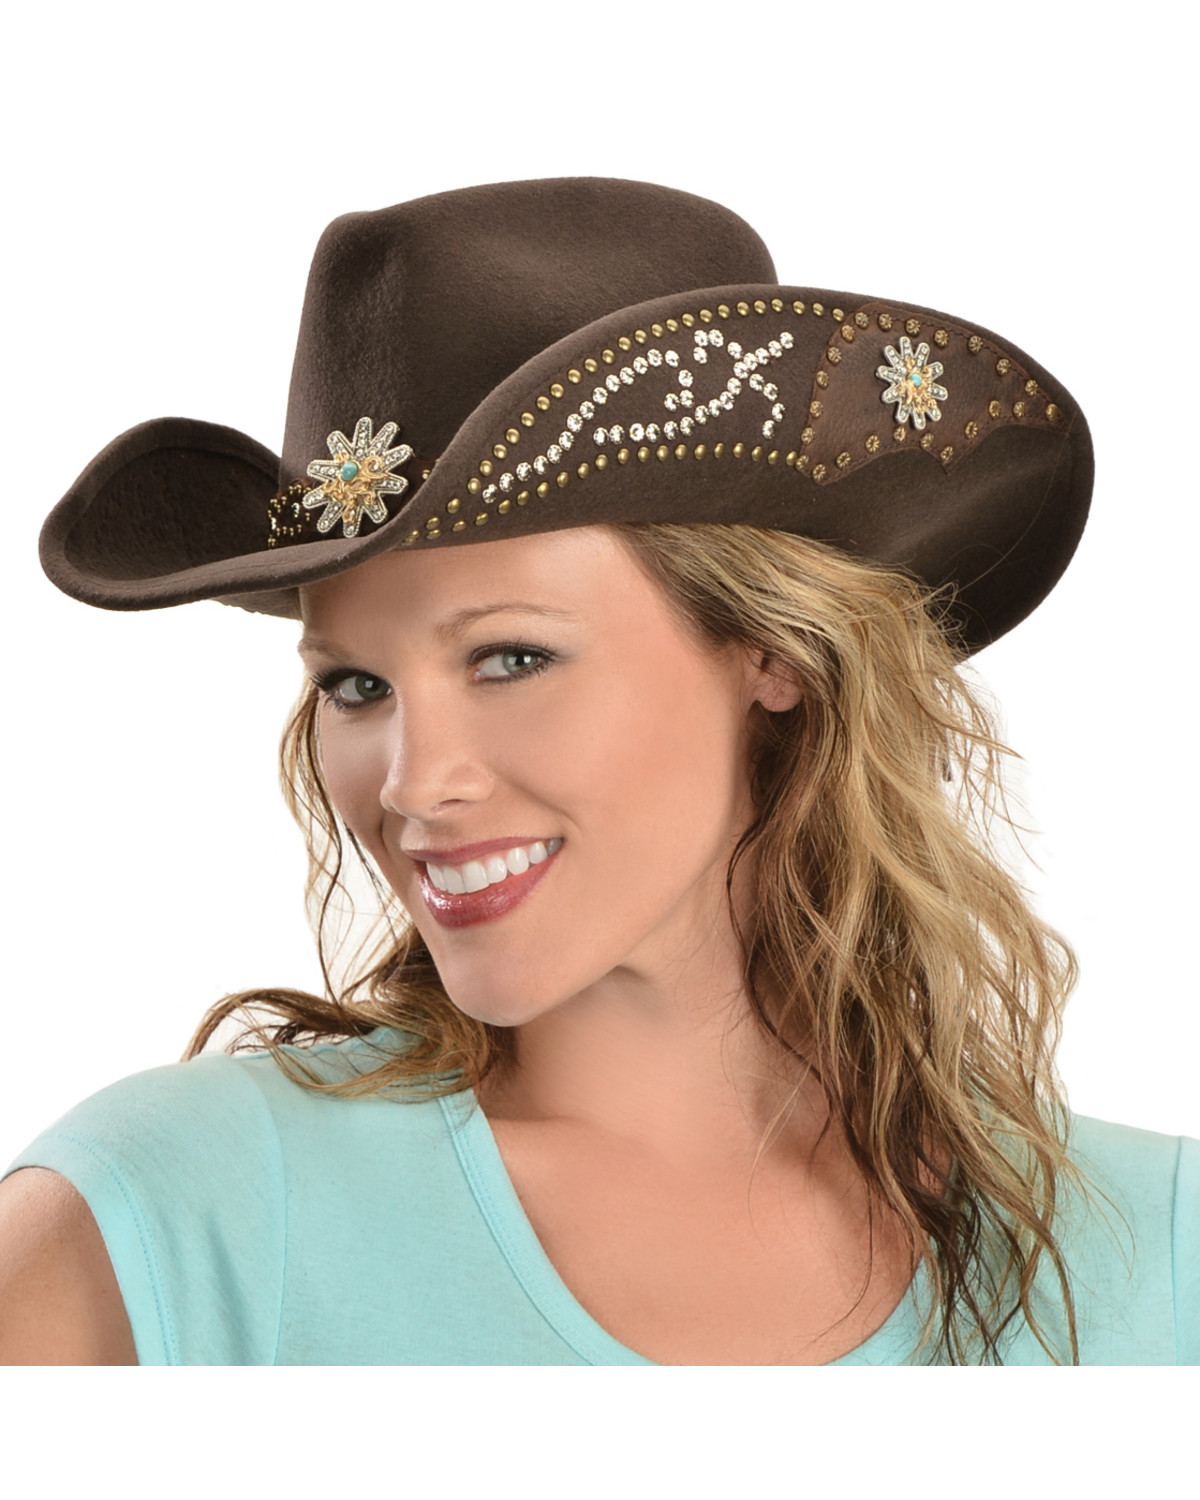 Bullhide Hats Women s Your Everything Embellished Felt Cowgirl Hat ... 9eec02fe970